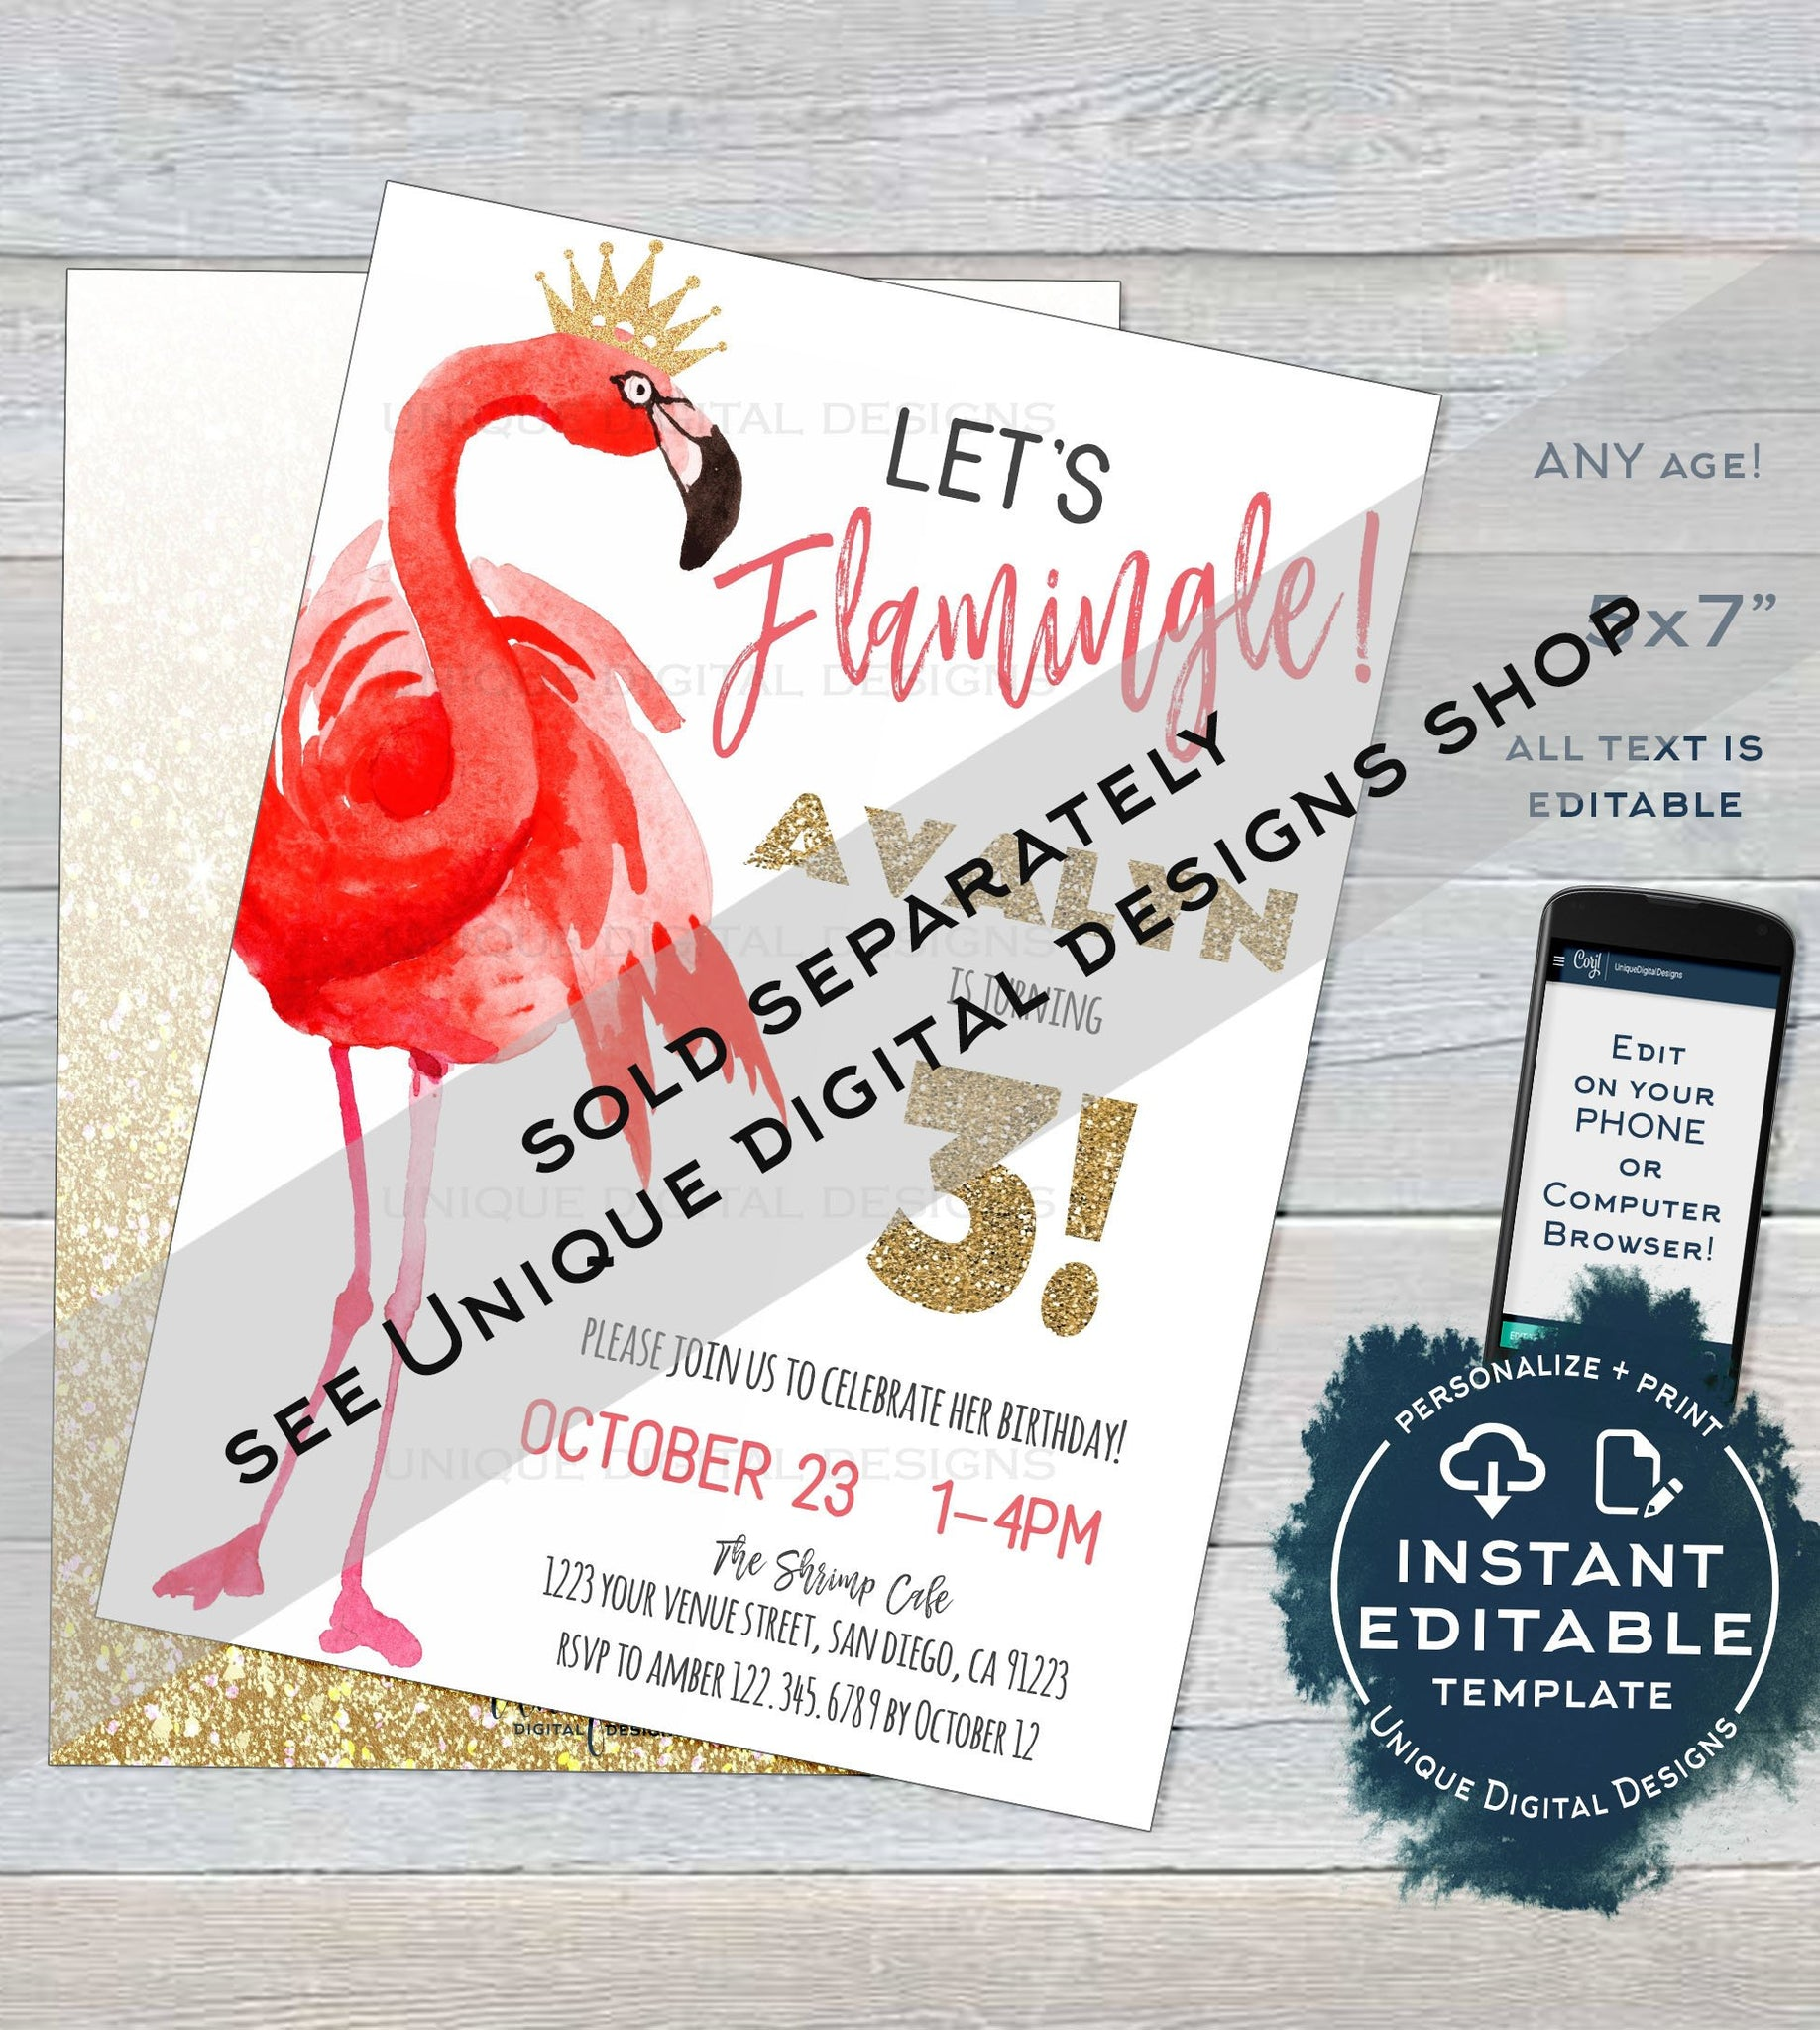 image regarding Printable Flamingo Template known as Enables Flamingle Little one Shower Invitation Template, Editable Youngster Woman Shower Invite Custom-made Purple Flamingo Celebration Printable Fast Obtain